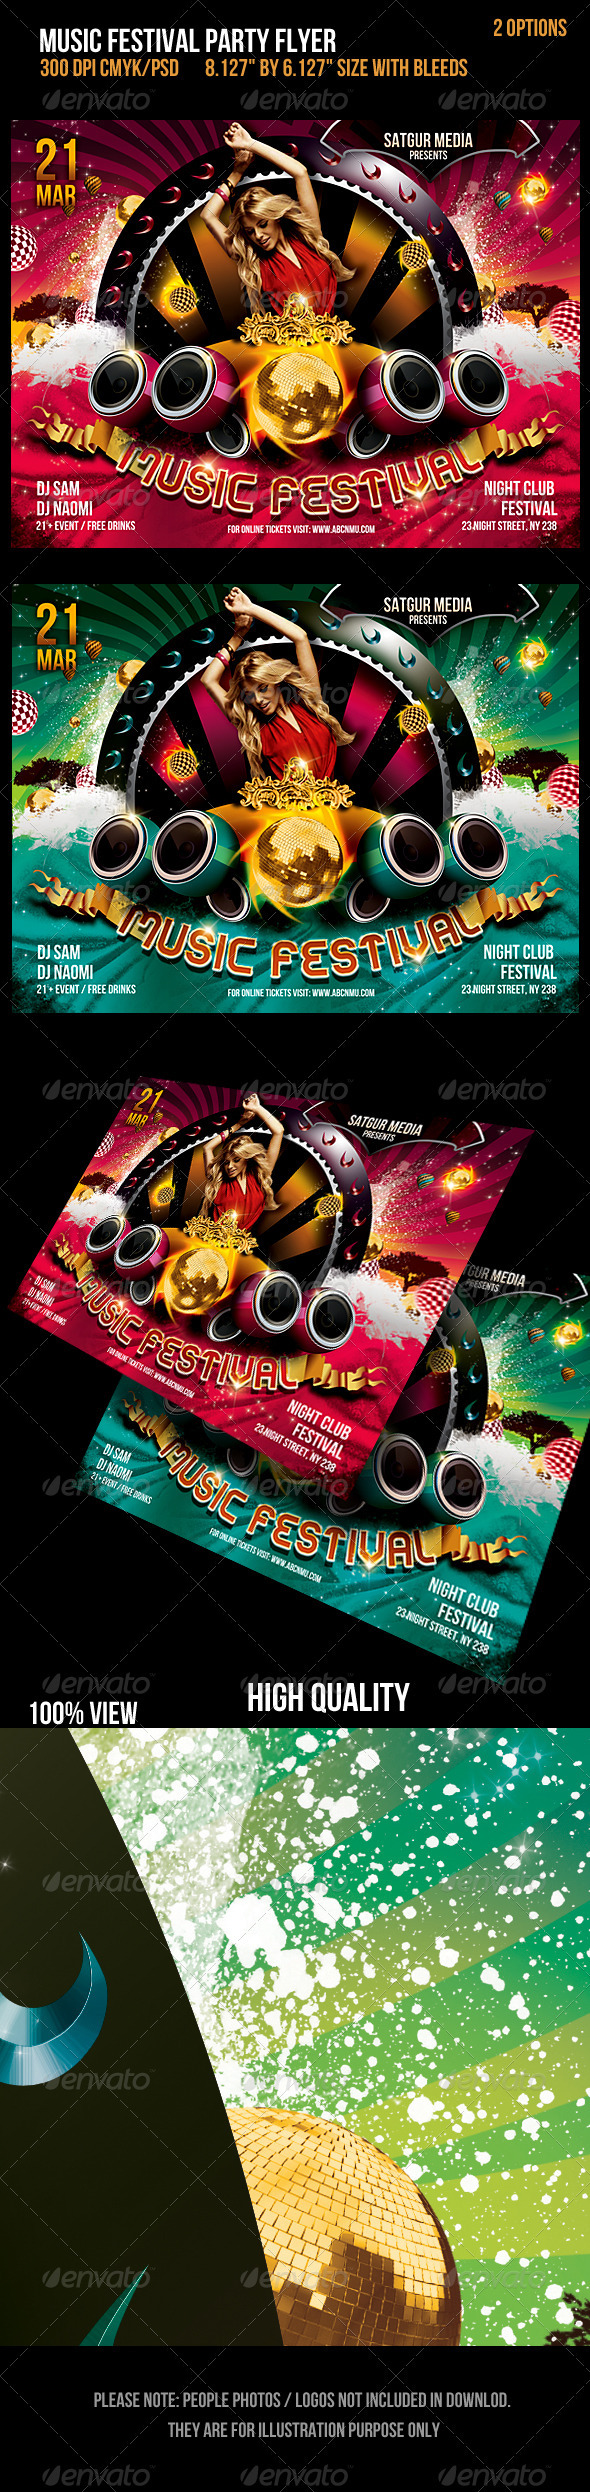 GraphicRiver Music Festival Dance Party Flyer 1682684